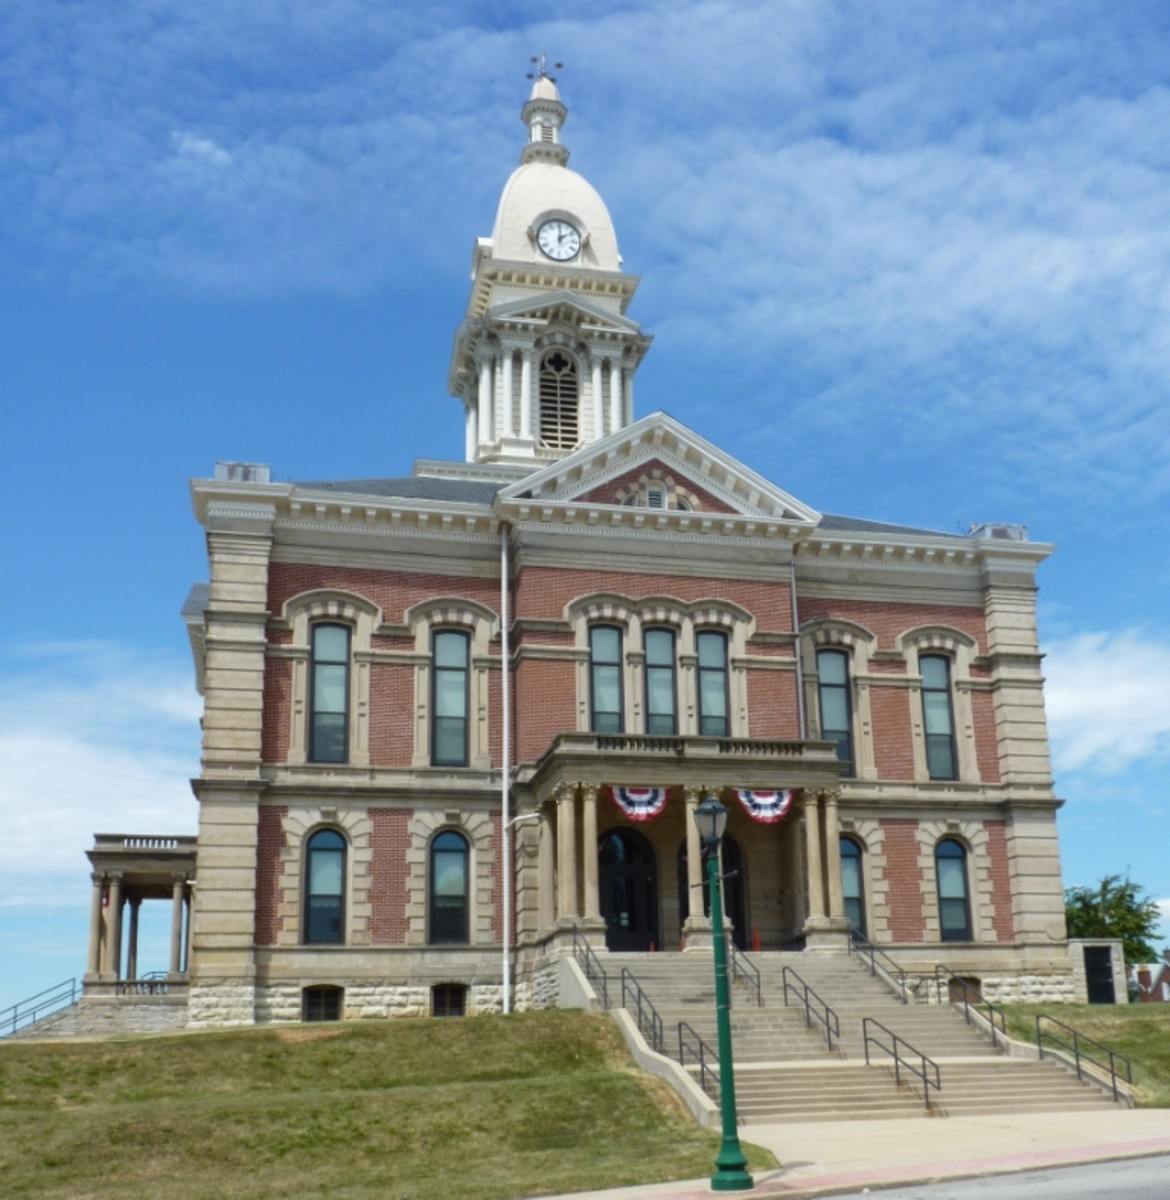 Four Brush lights were hung from the Wabash County Courthouse for the first lighting in 1880